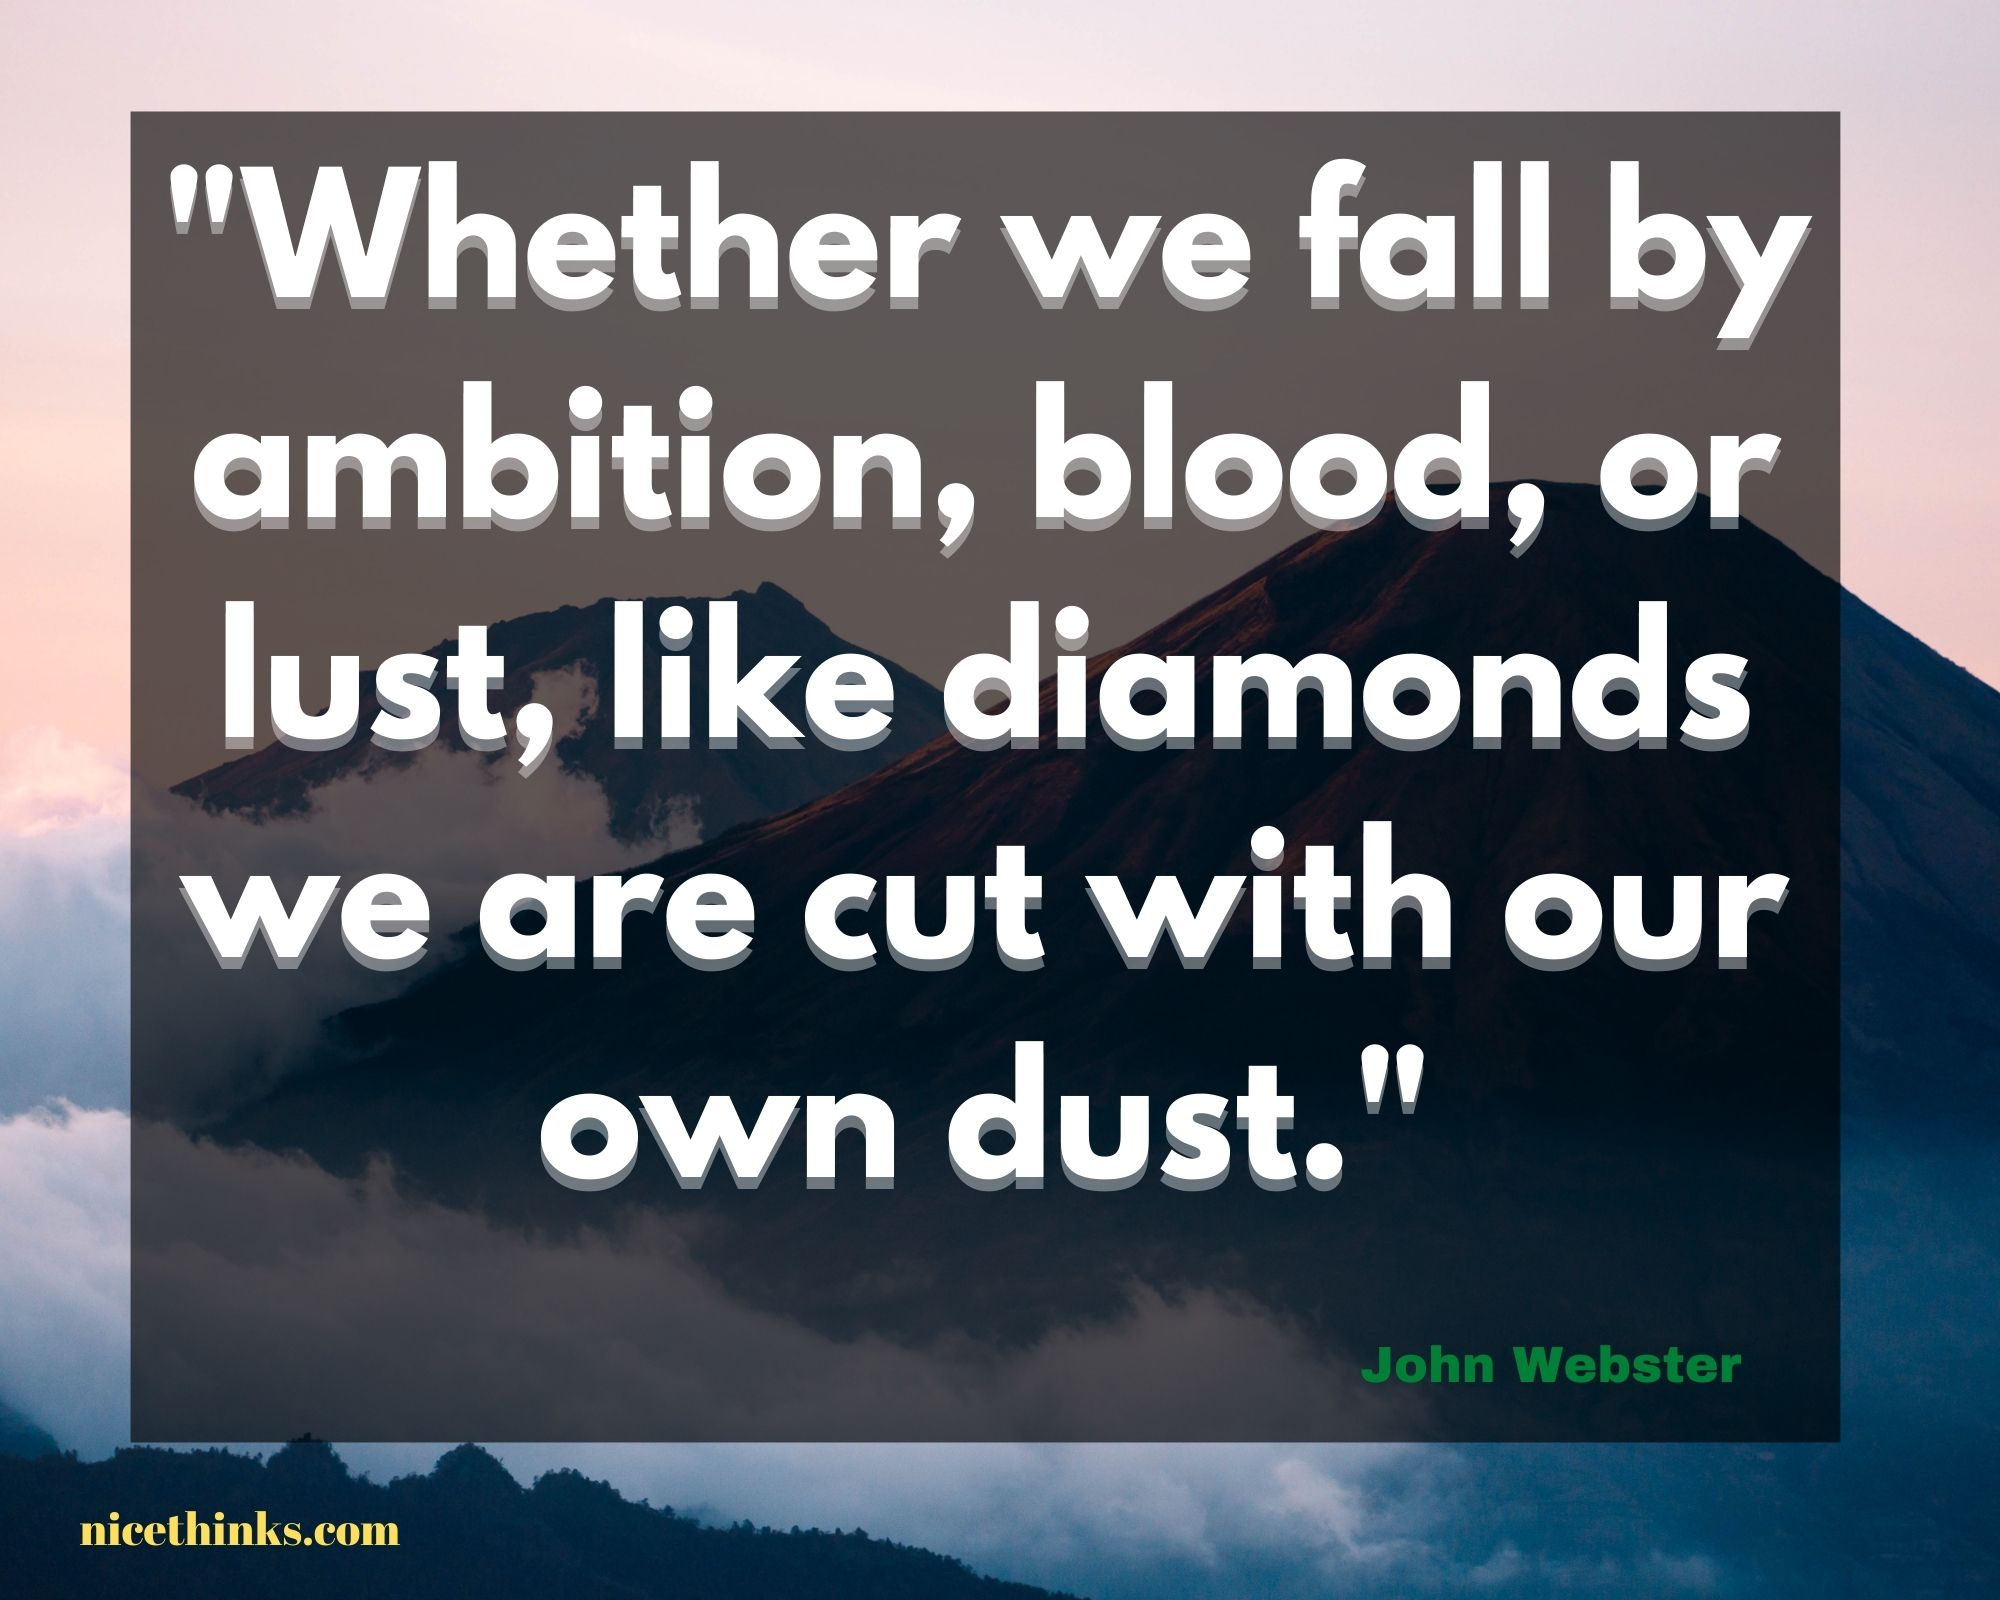 Quote by John Webster